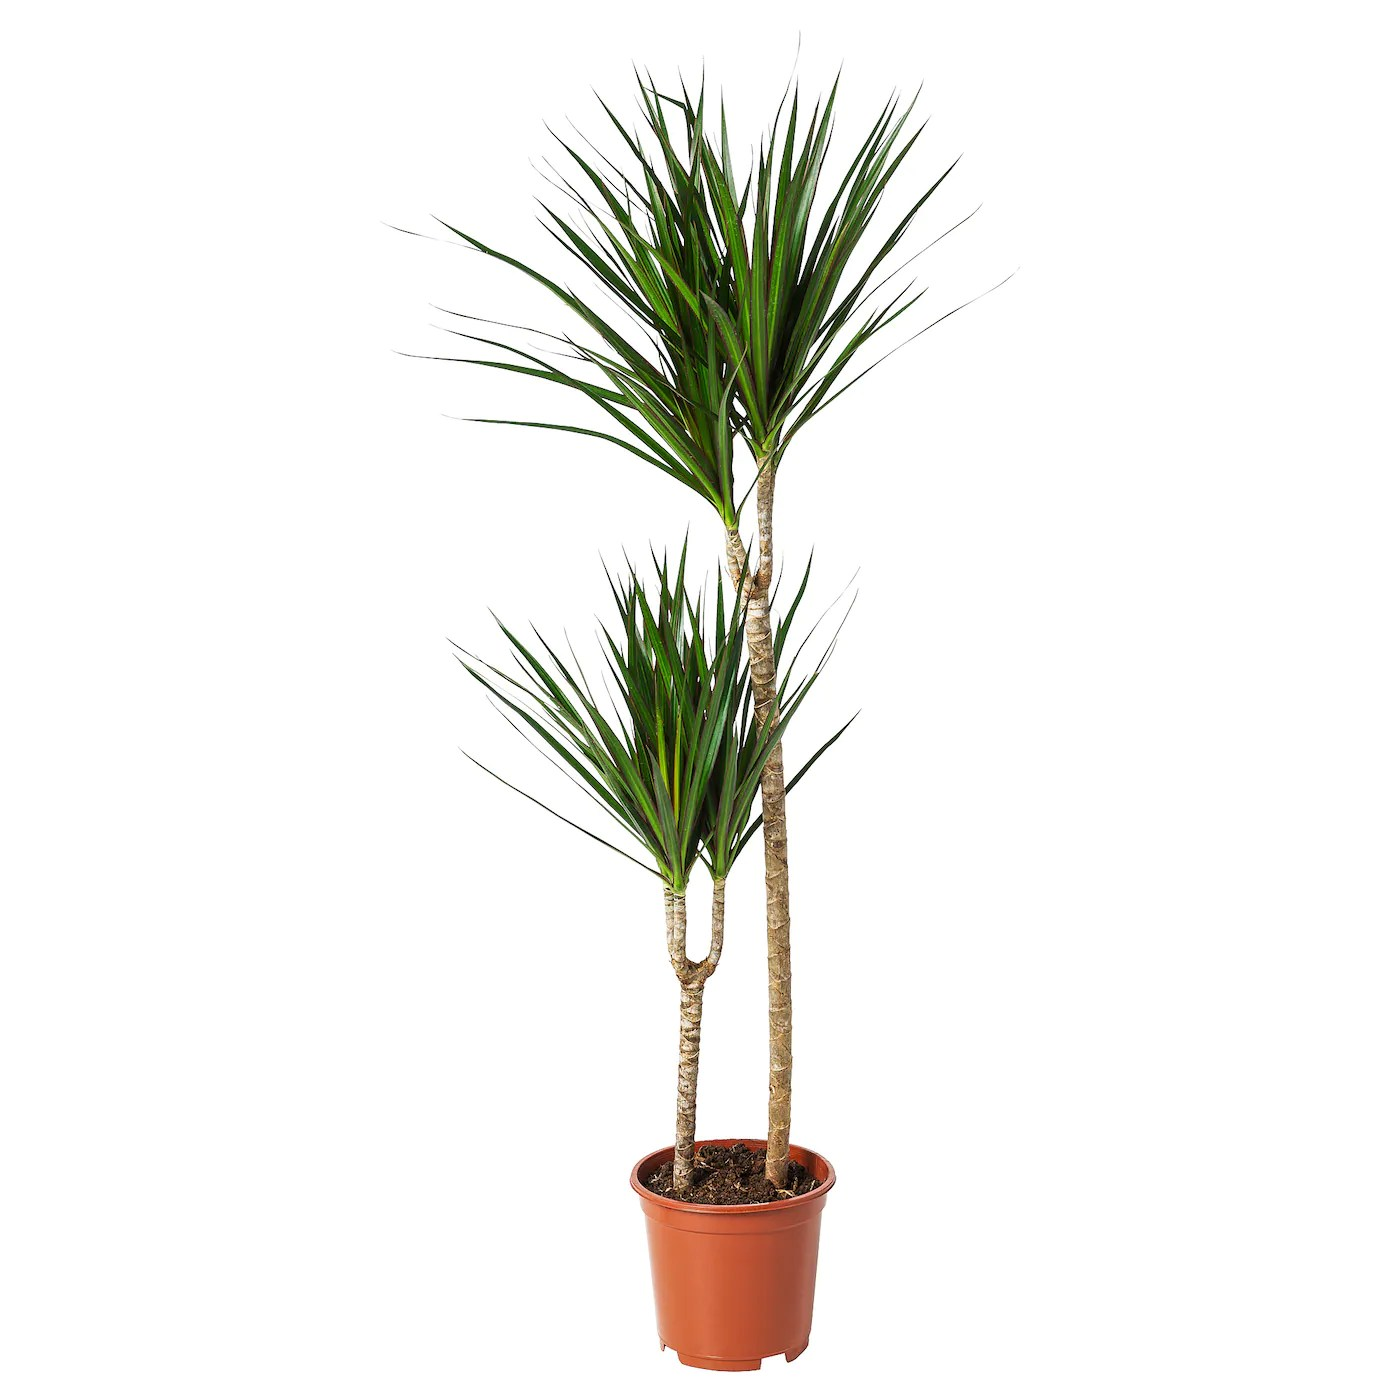 Ikea Palm Tree Dracaena Marginata Potted Plant Dragon Tree 2 Stem